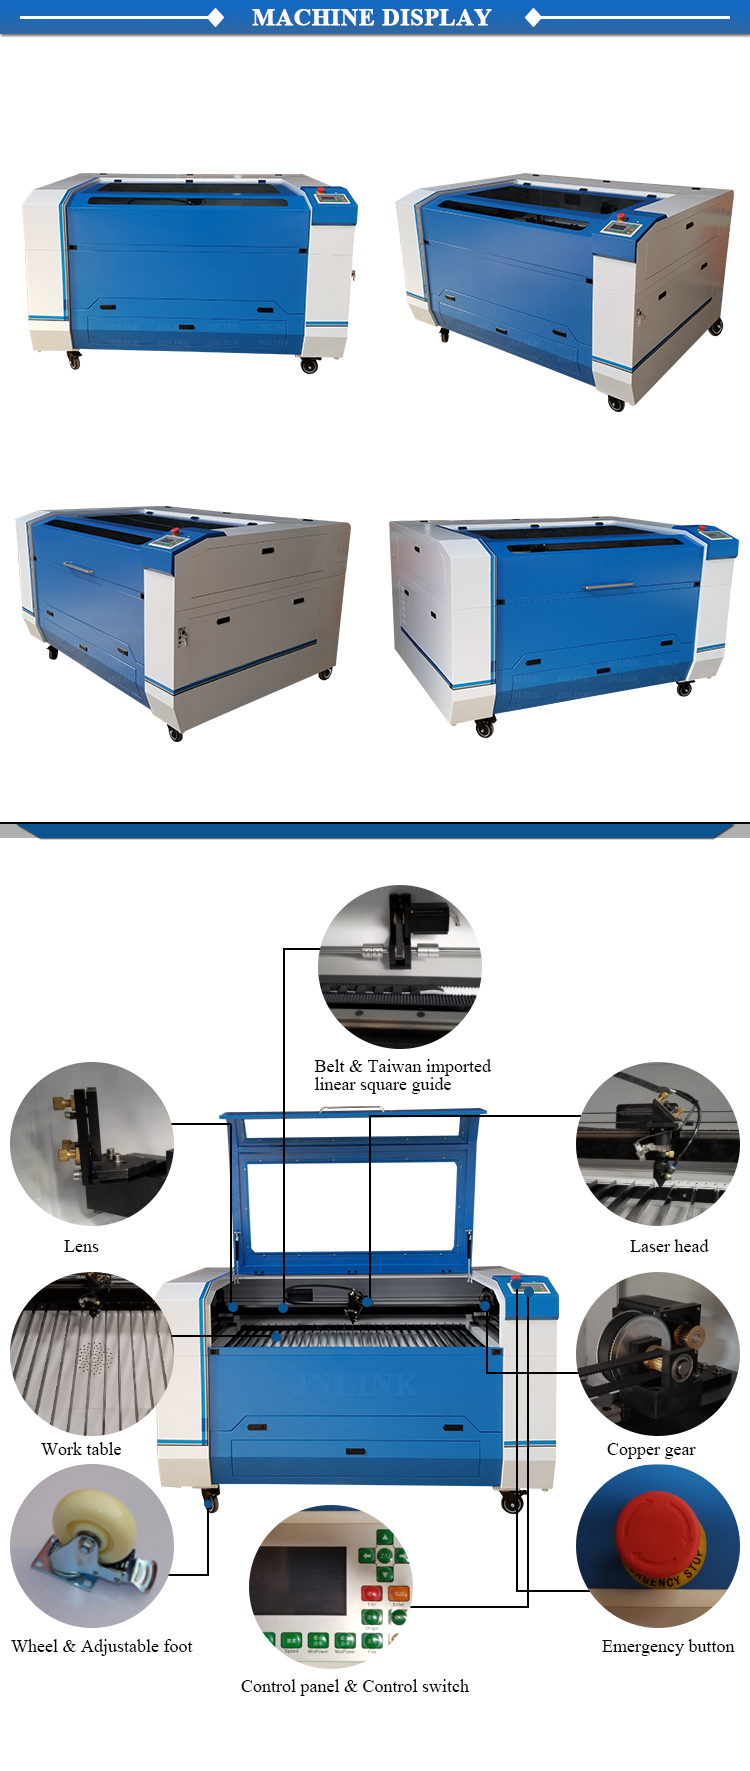 130w laser cutter sheet metal laser cutting cnc machine price in india